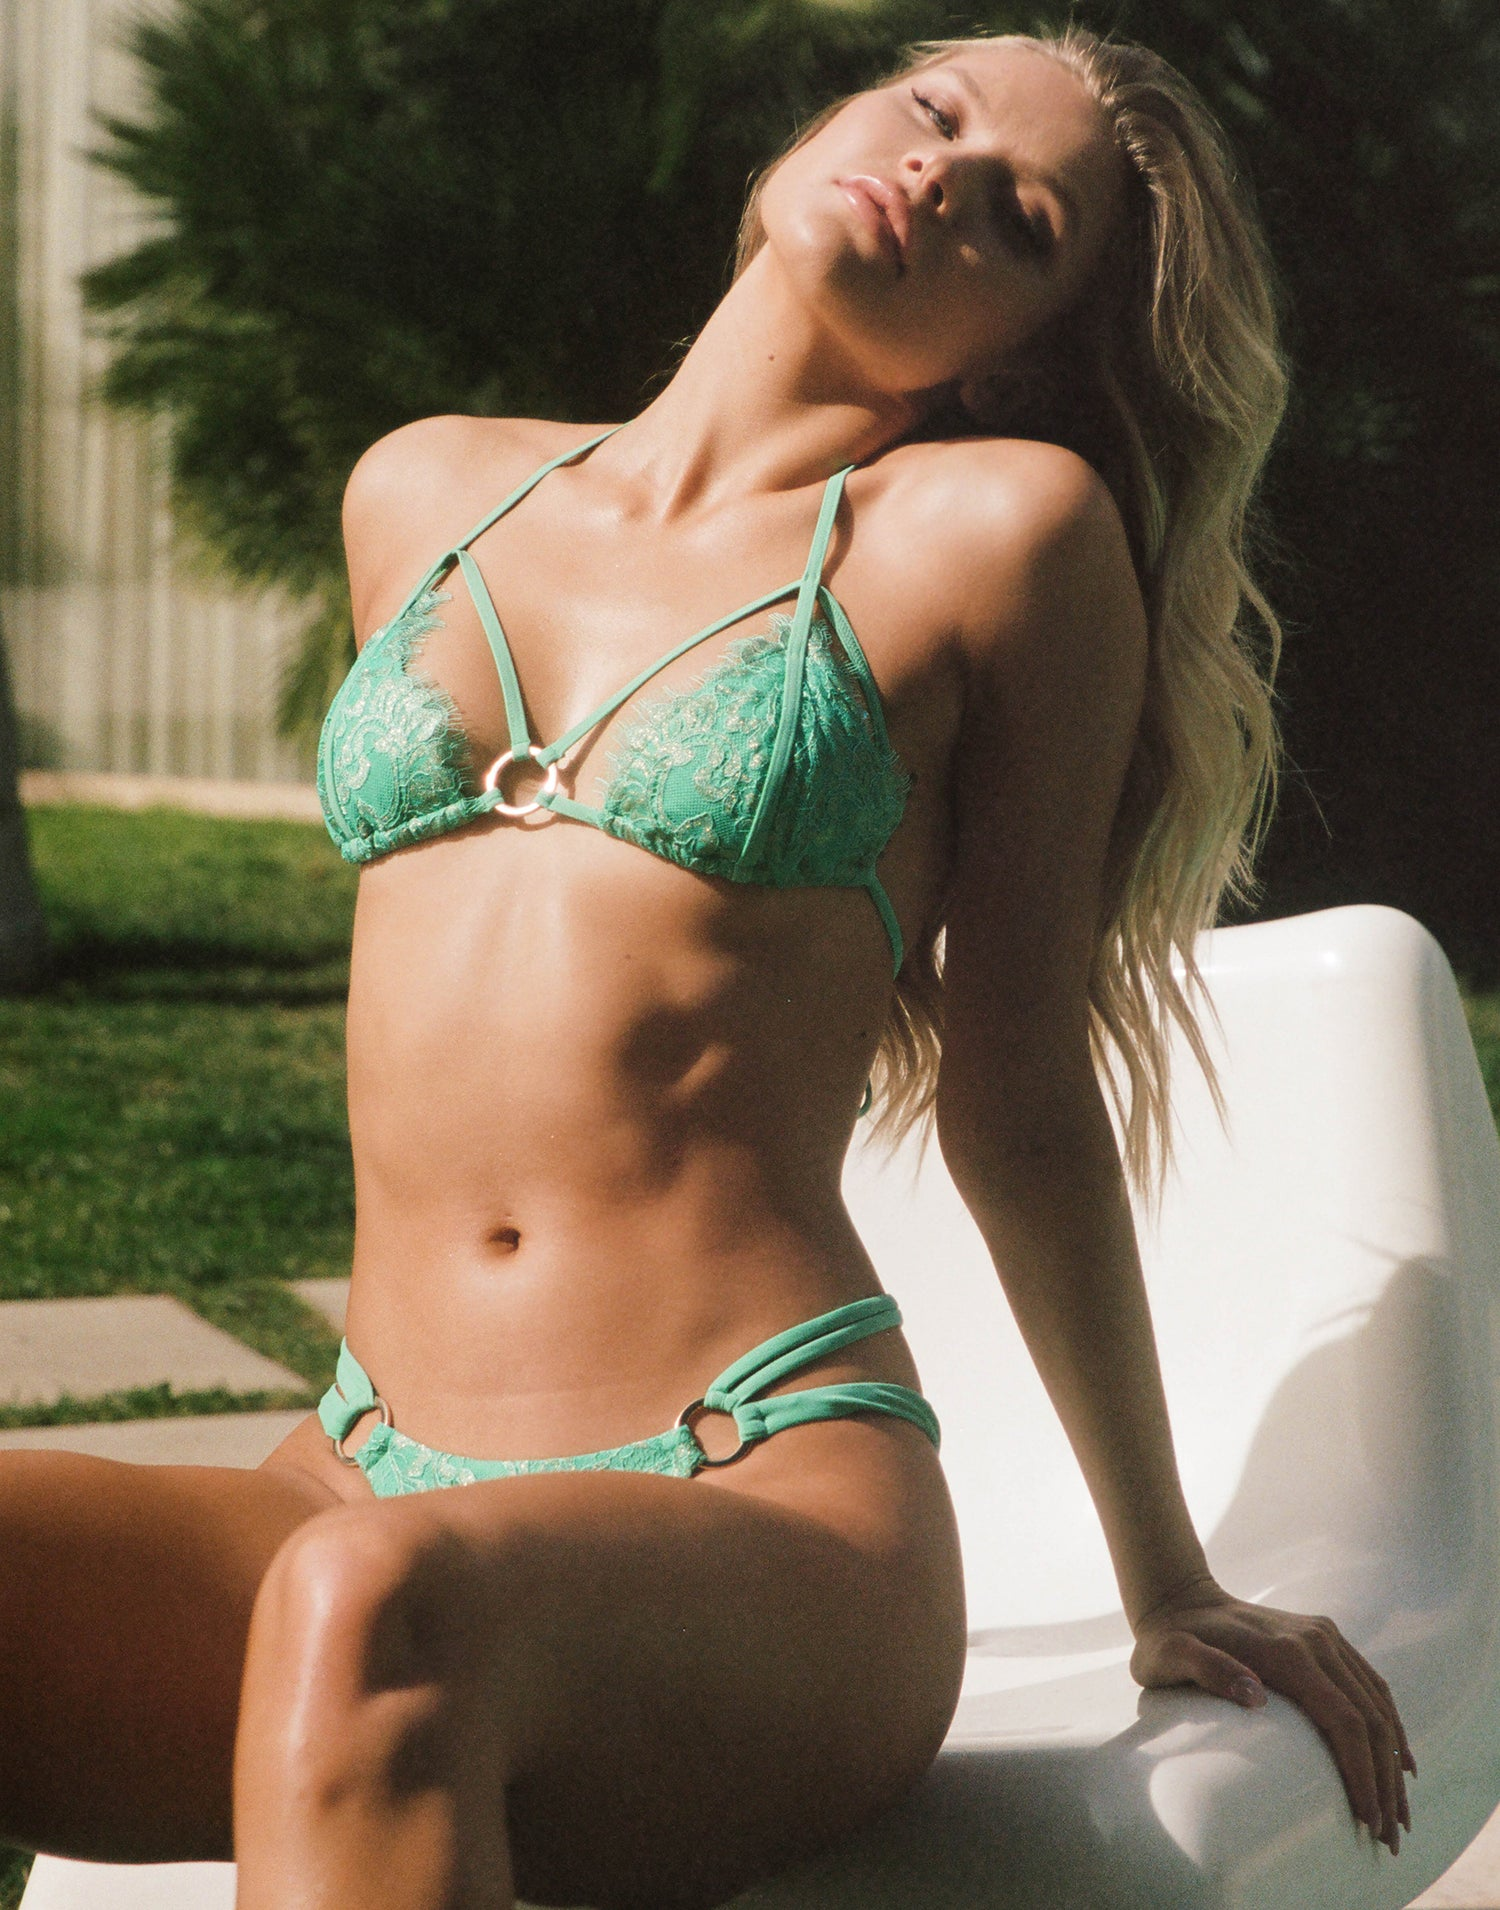 Gunpowder & Lace Skimpy Bikini Bottom in Seafoam with Strappy Details and Gold Ring Hardware - Alternate Front View / Summer 2021 Campaign - Josie Canseco